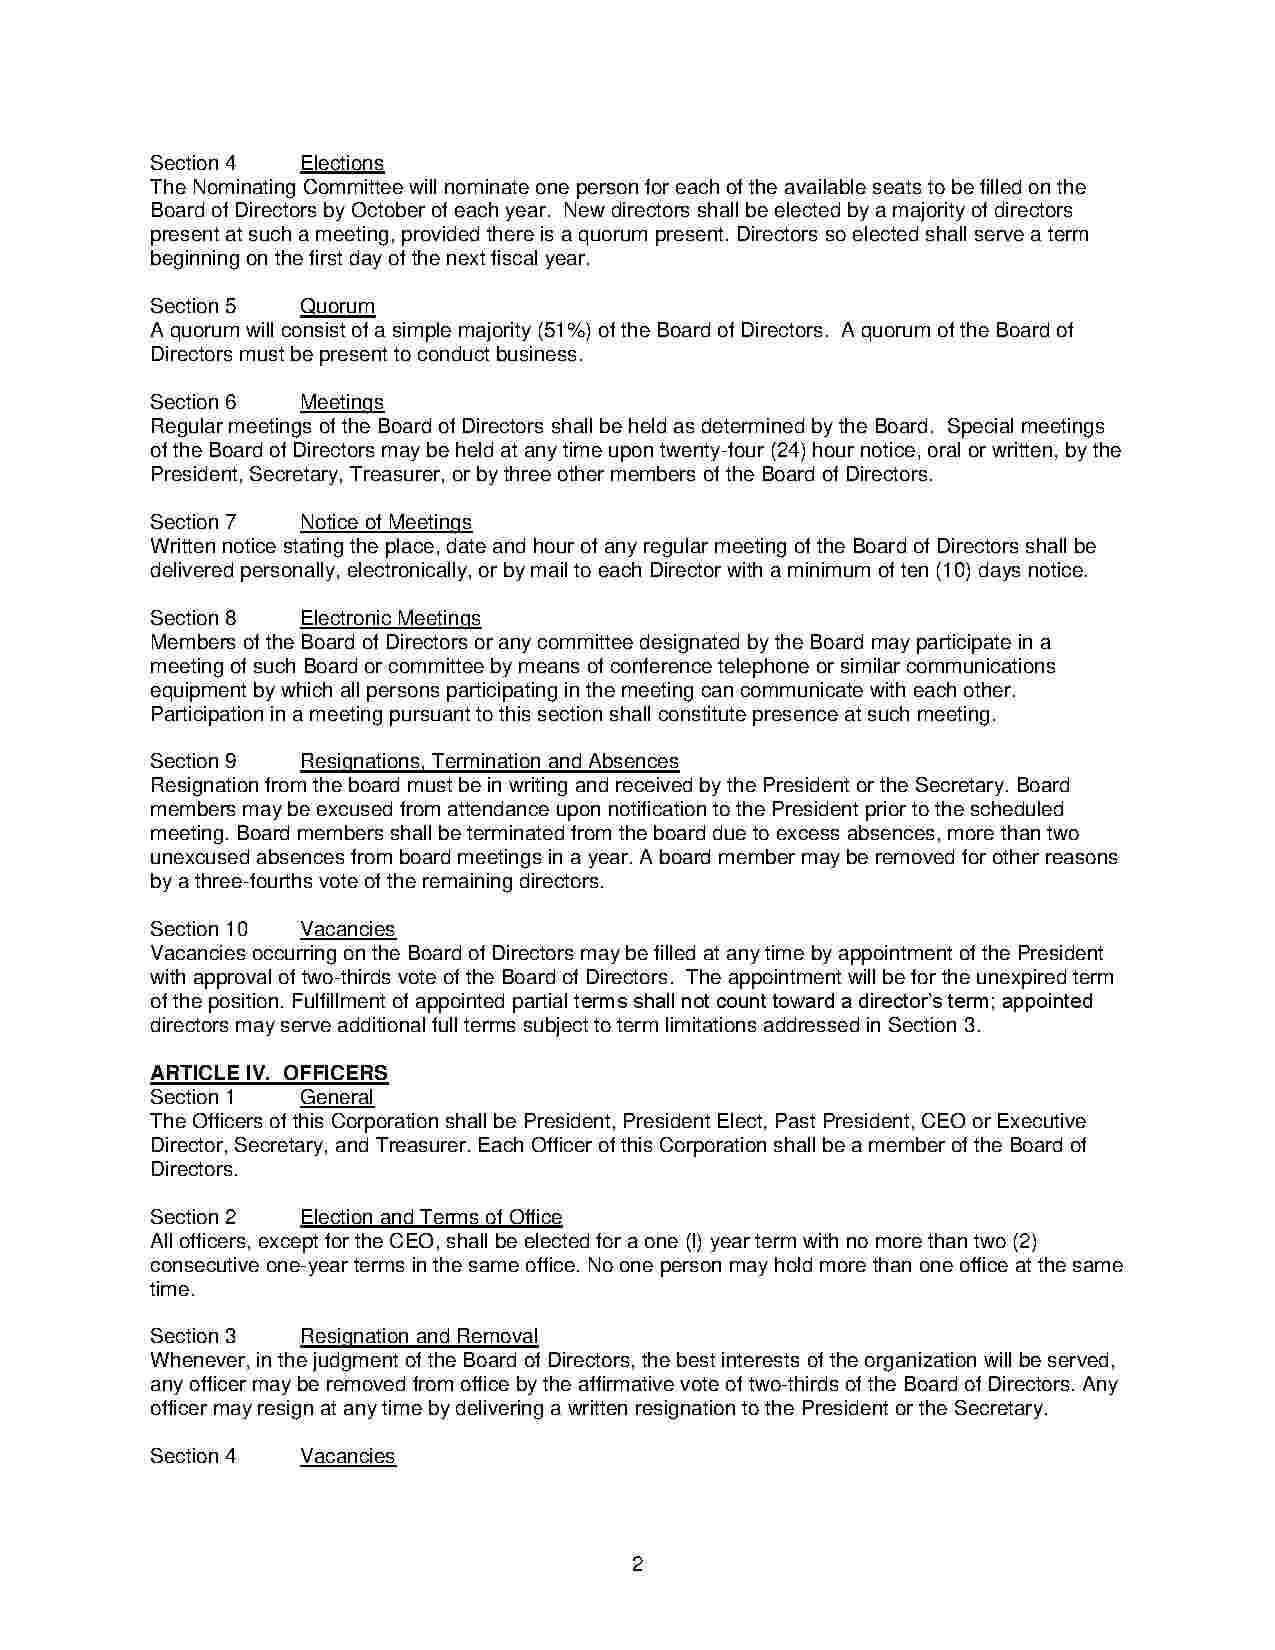 Download Corporate Bylaws Style 8 Template For Free At In Corporate Bylaws Template Word